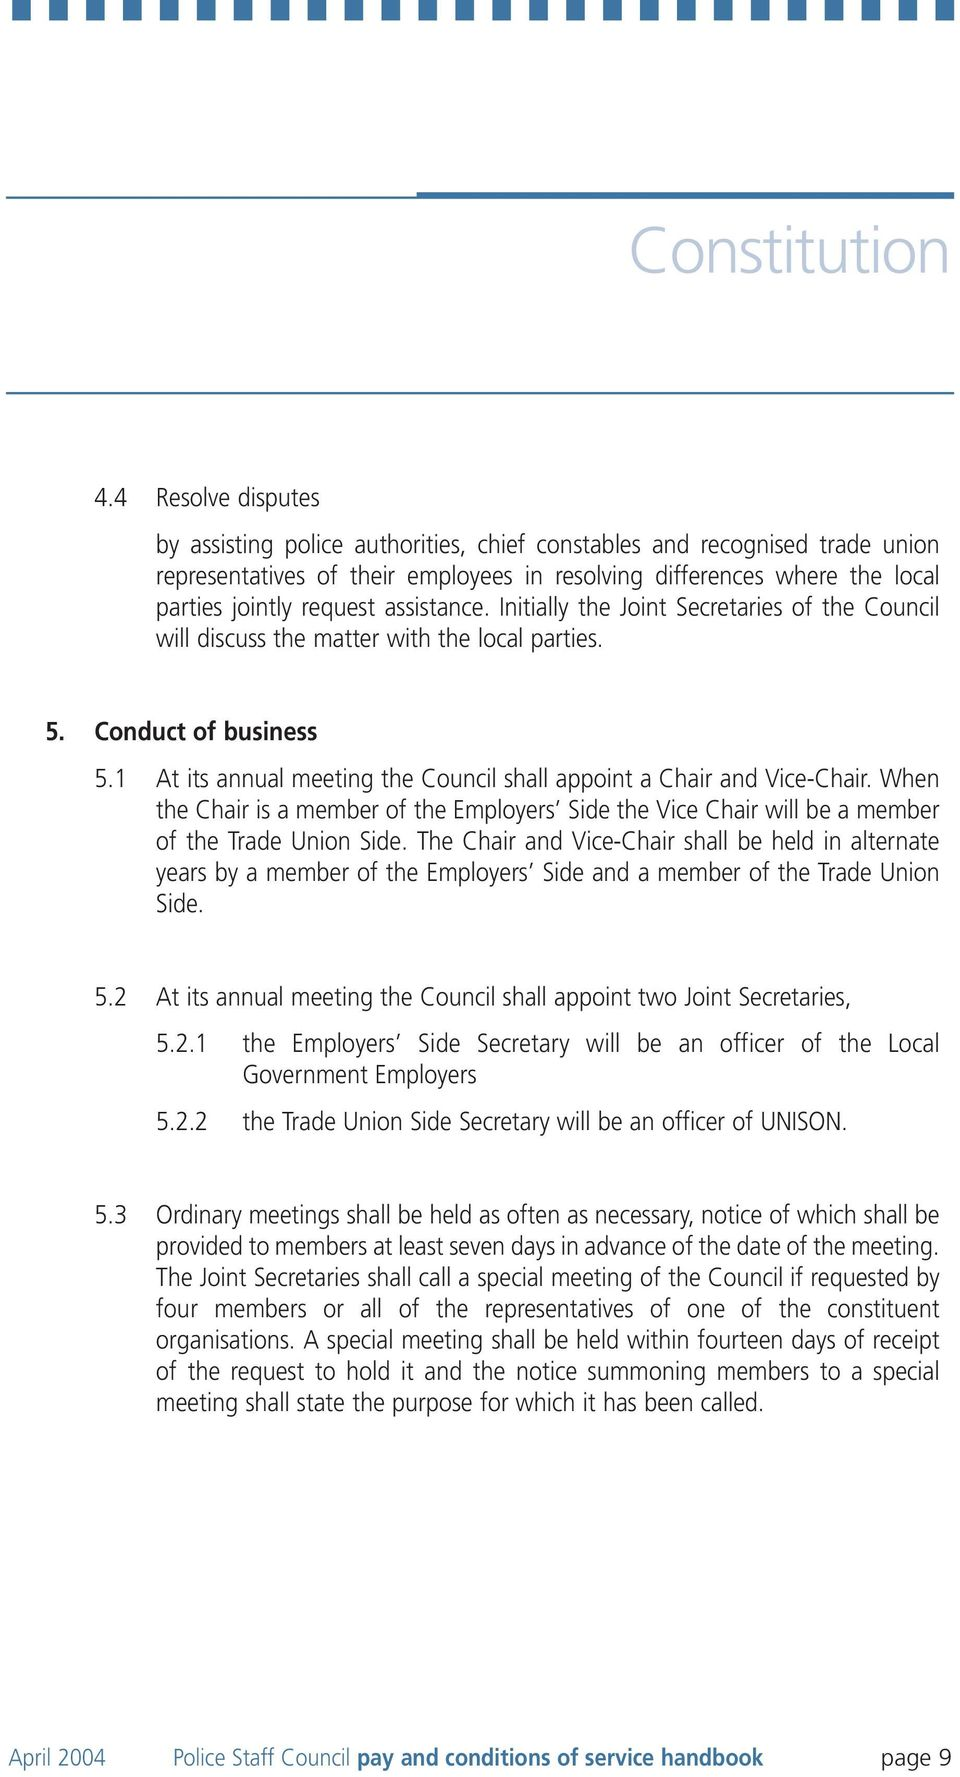 assistance. Initially the Joint Secretaries of the Council will discuss the matter with the local parties. 5. Conduct of business 5.